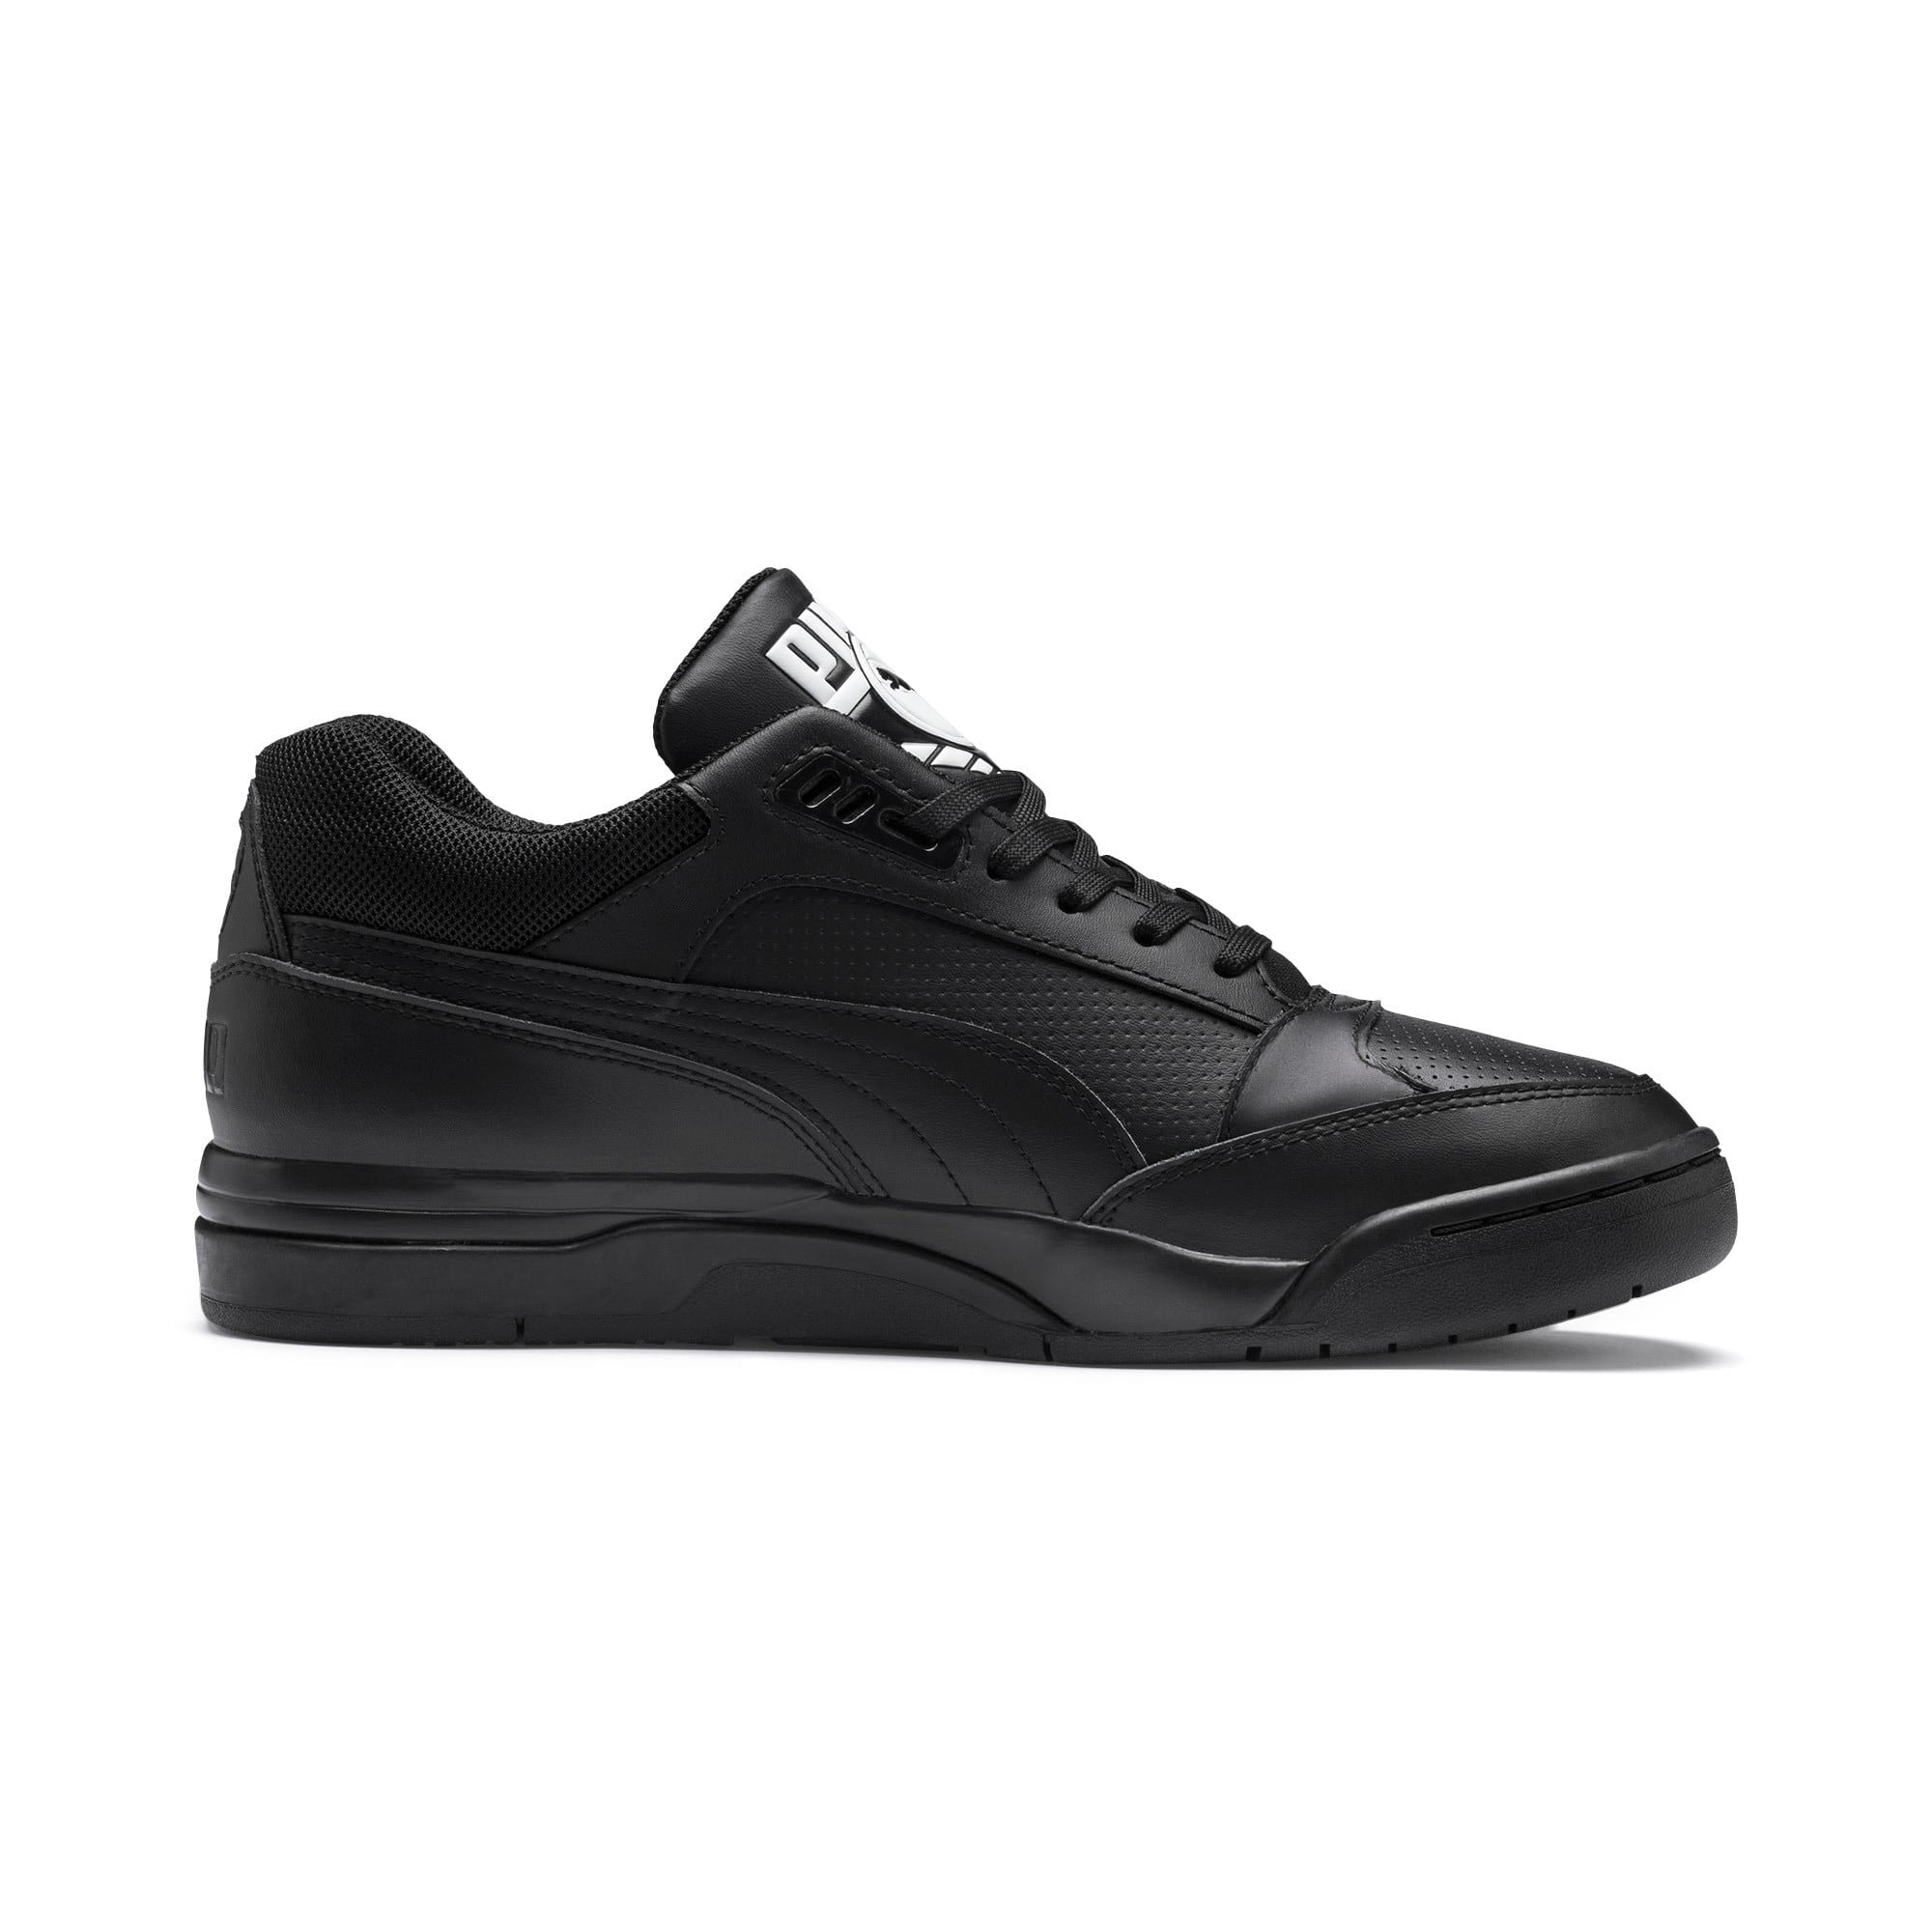 Thumbnail 5 of Palace Guard Sneakers, Puma Black-Puma White, medium